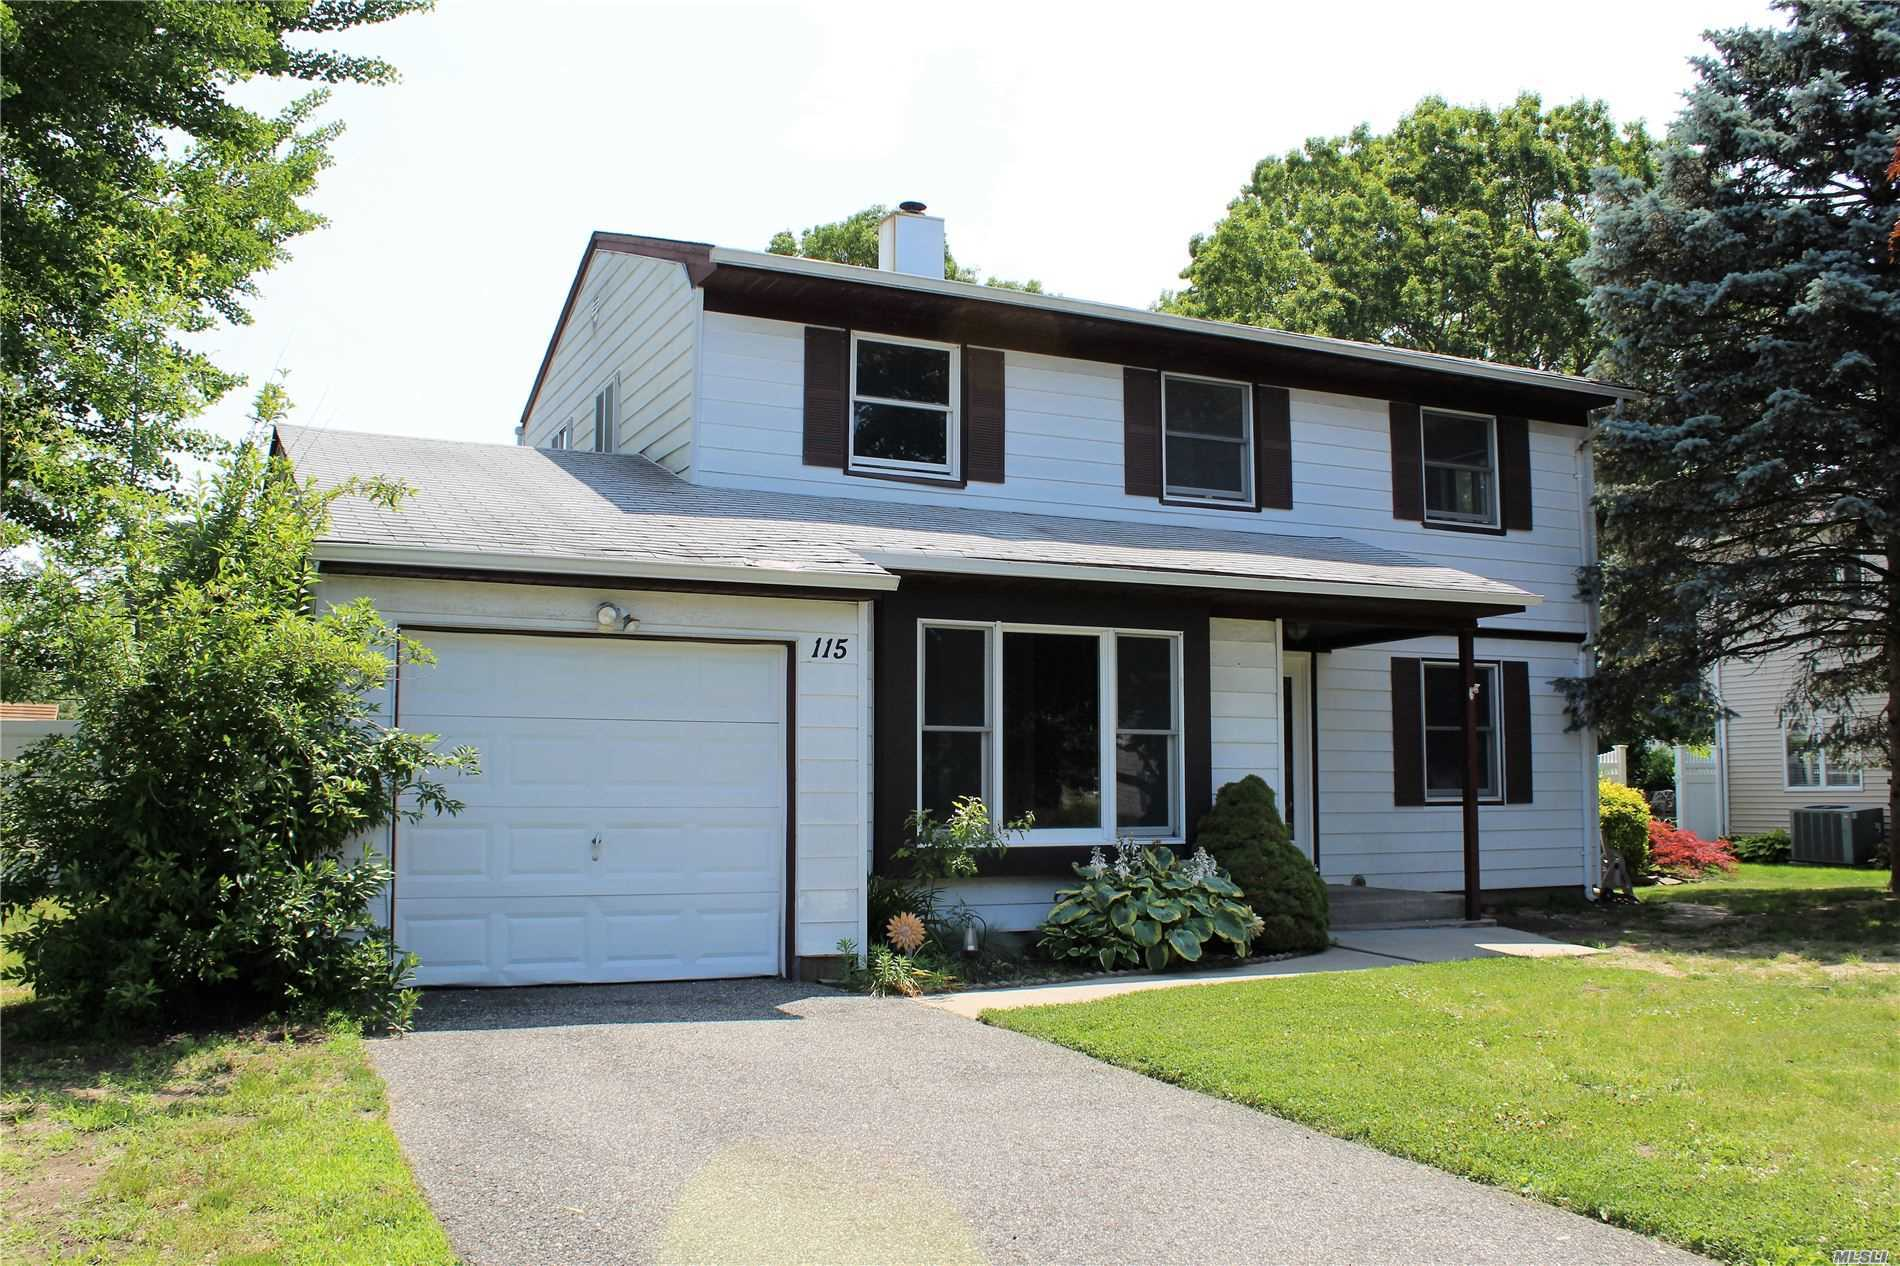 Desirable Birchwood Estates Majestic Colonial. Updated cesspools, 200 amp electric, some updated windows. Hardwood floors through out. Spacious 2 br, Kit, Lr, full bath apt w/4 walk in closets. Legal M/D with proper permits. Sachem Star $953. Tamarac Elementary, Seneca JH and Sachem East HS.